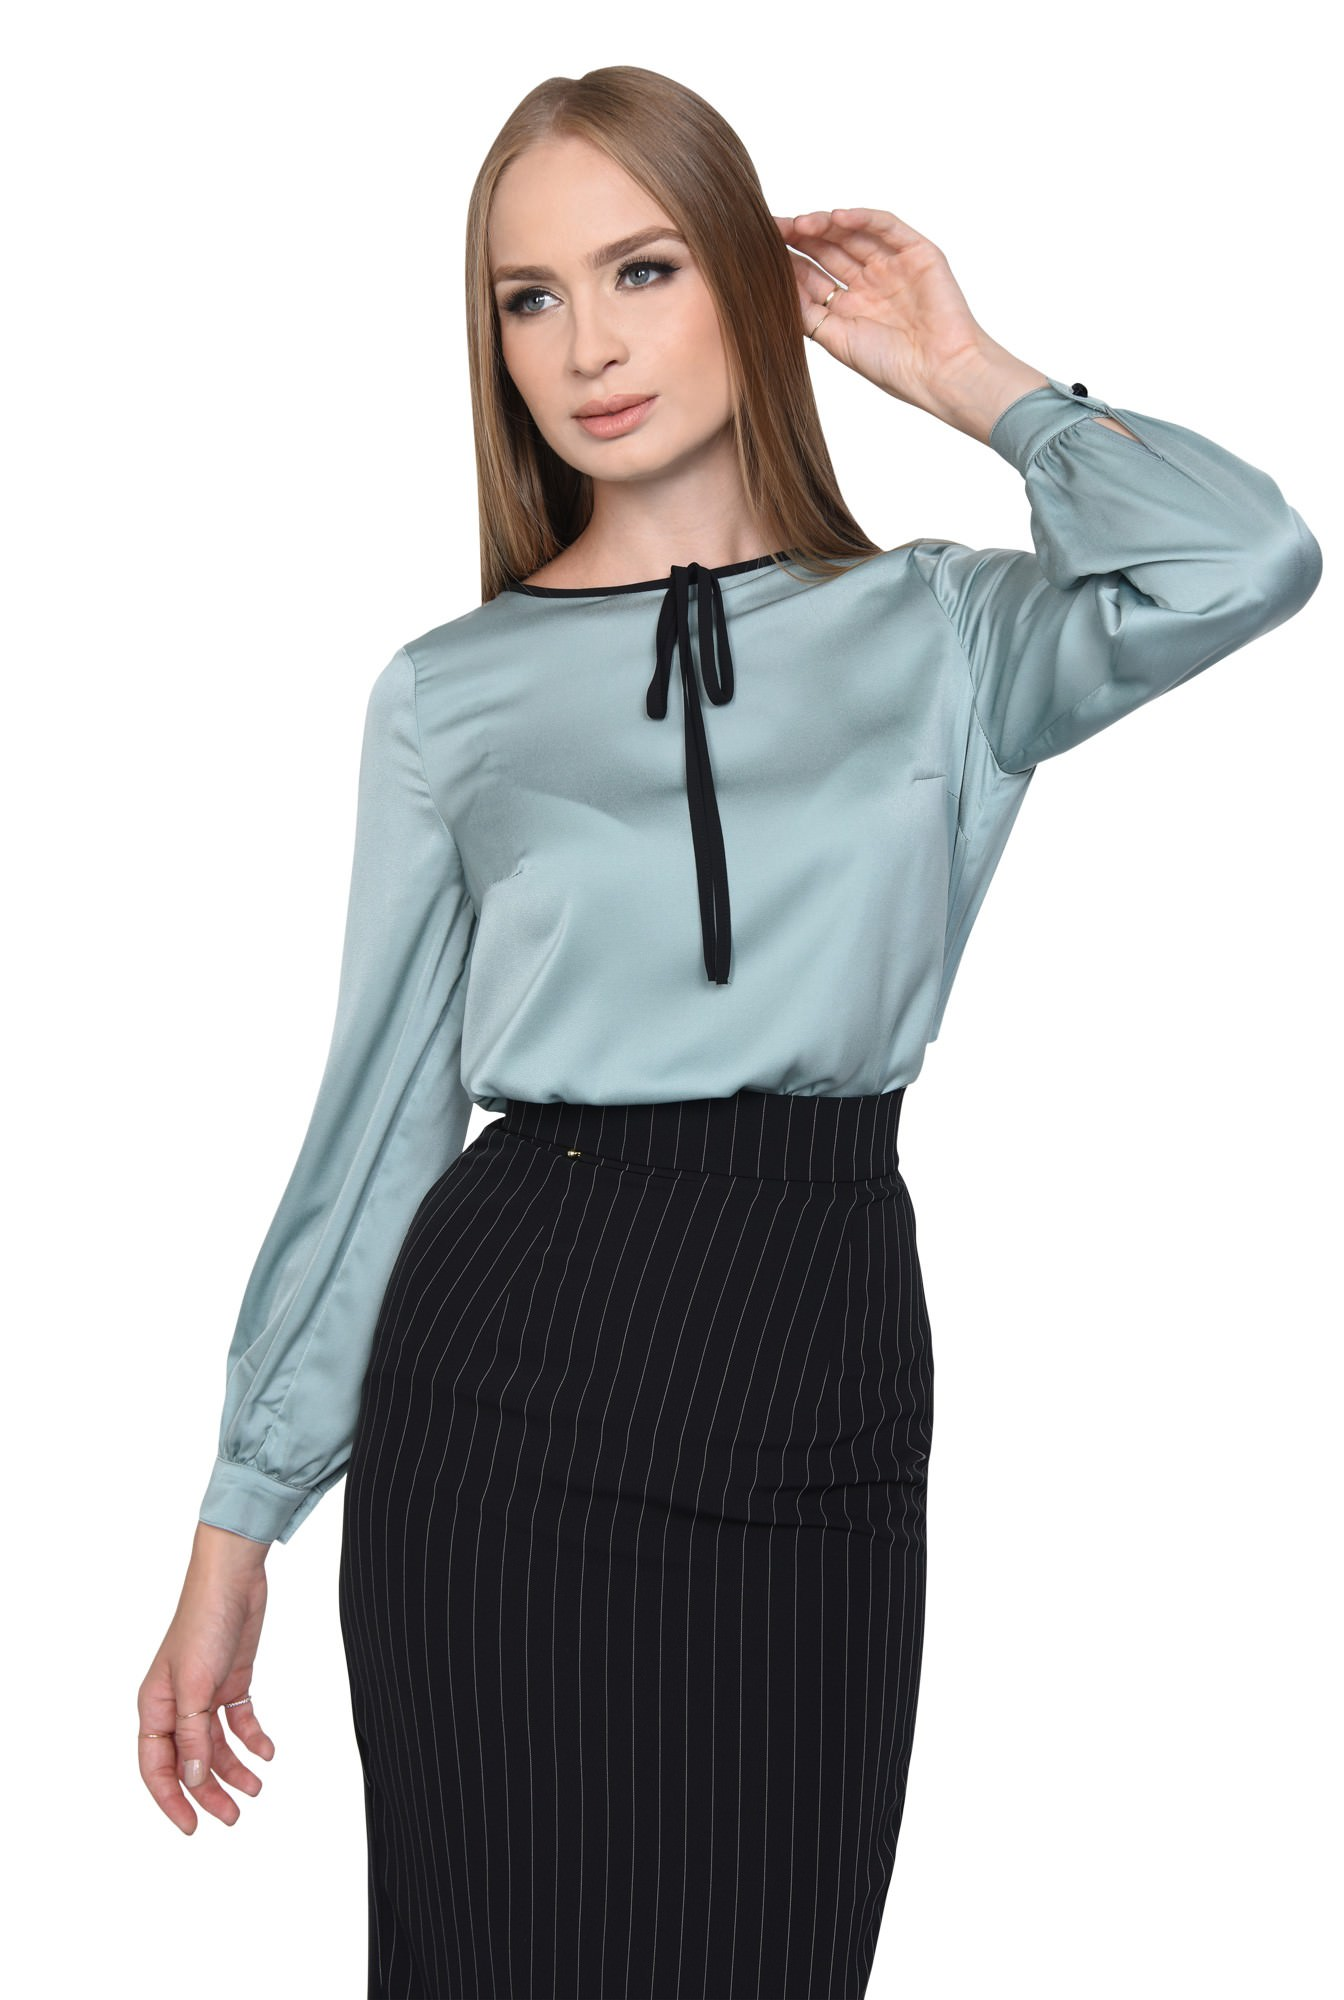 0 - BLUZA OFFICE BL 275-BLEU